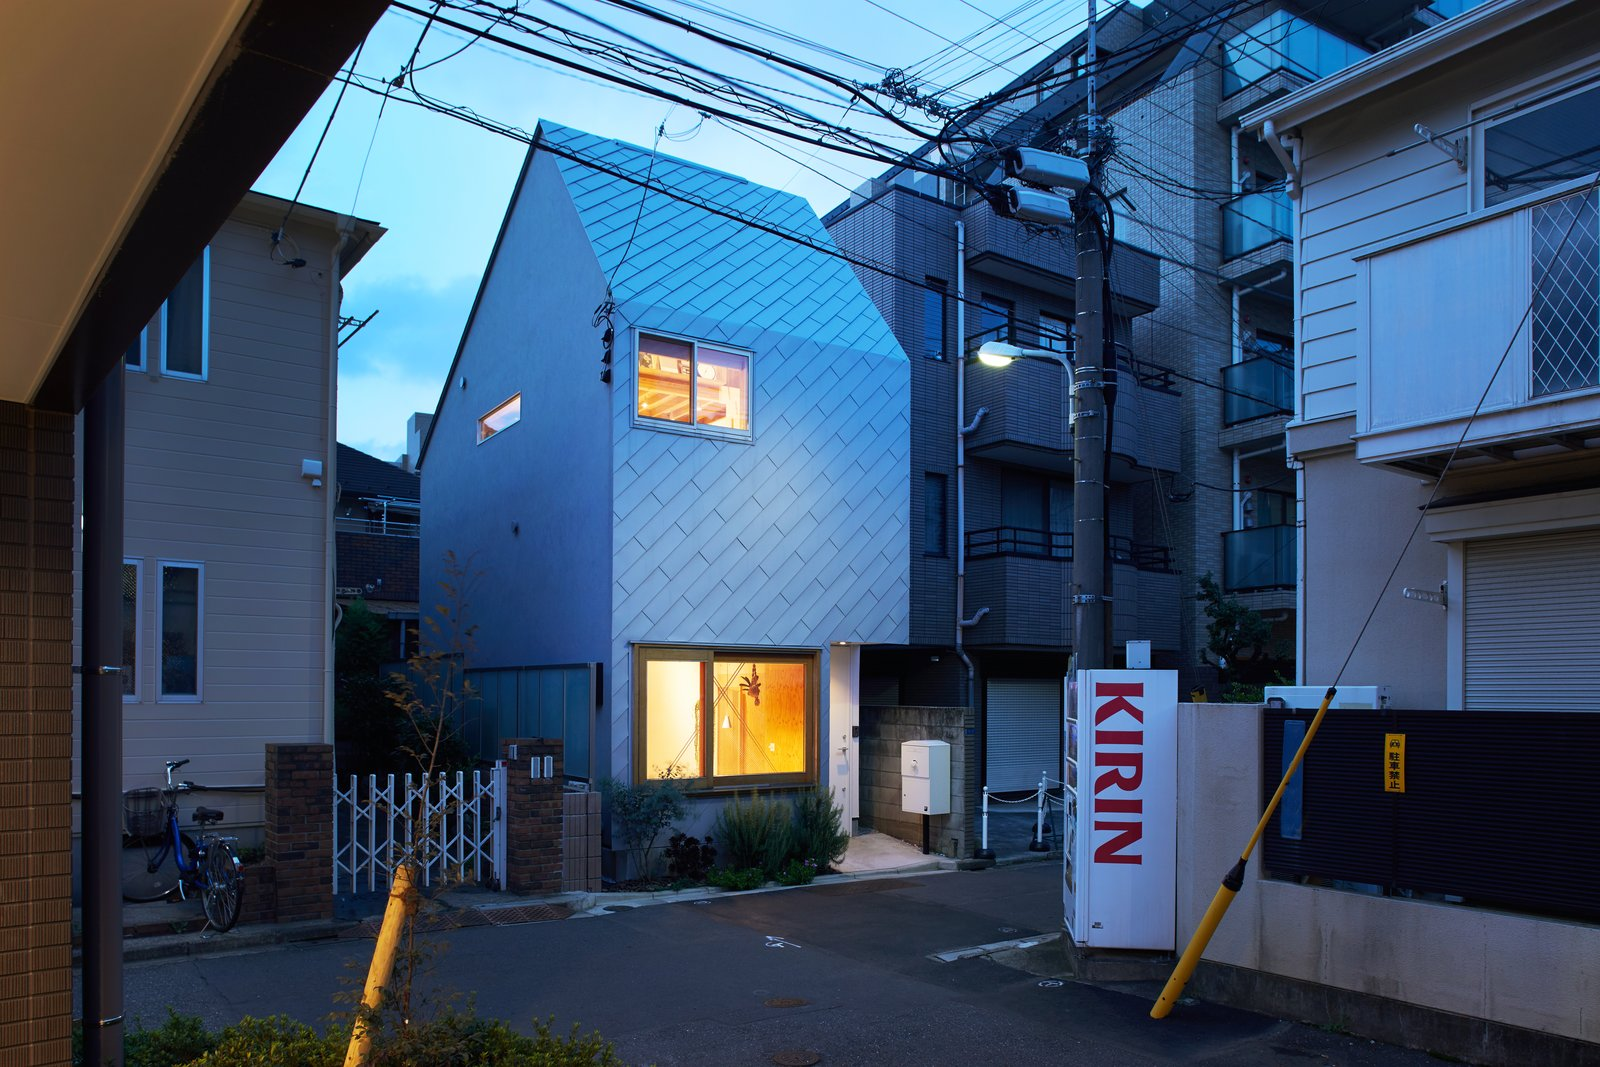 Exterior, Metal Roof Material, Small Home Building Type, Gable RoofLine, and Metal Siding Material  Photo 1 of 12 in A Pint-Sized Japanese Tiny Home Is Shaped Like a Milk Carton